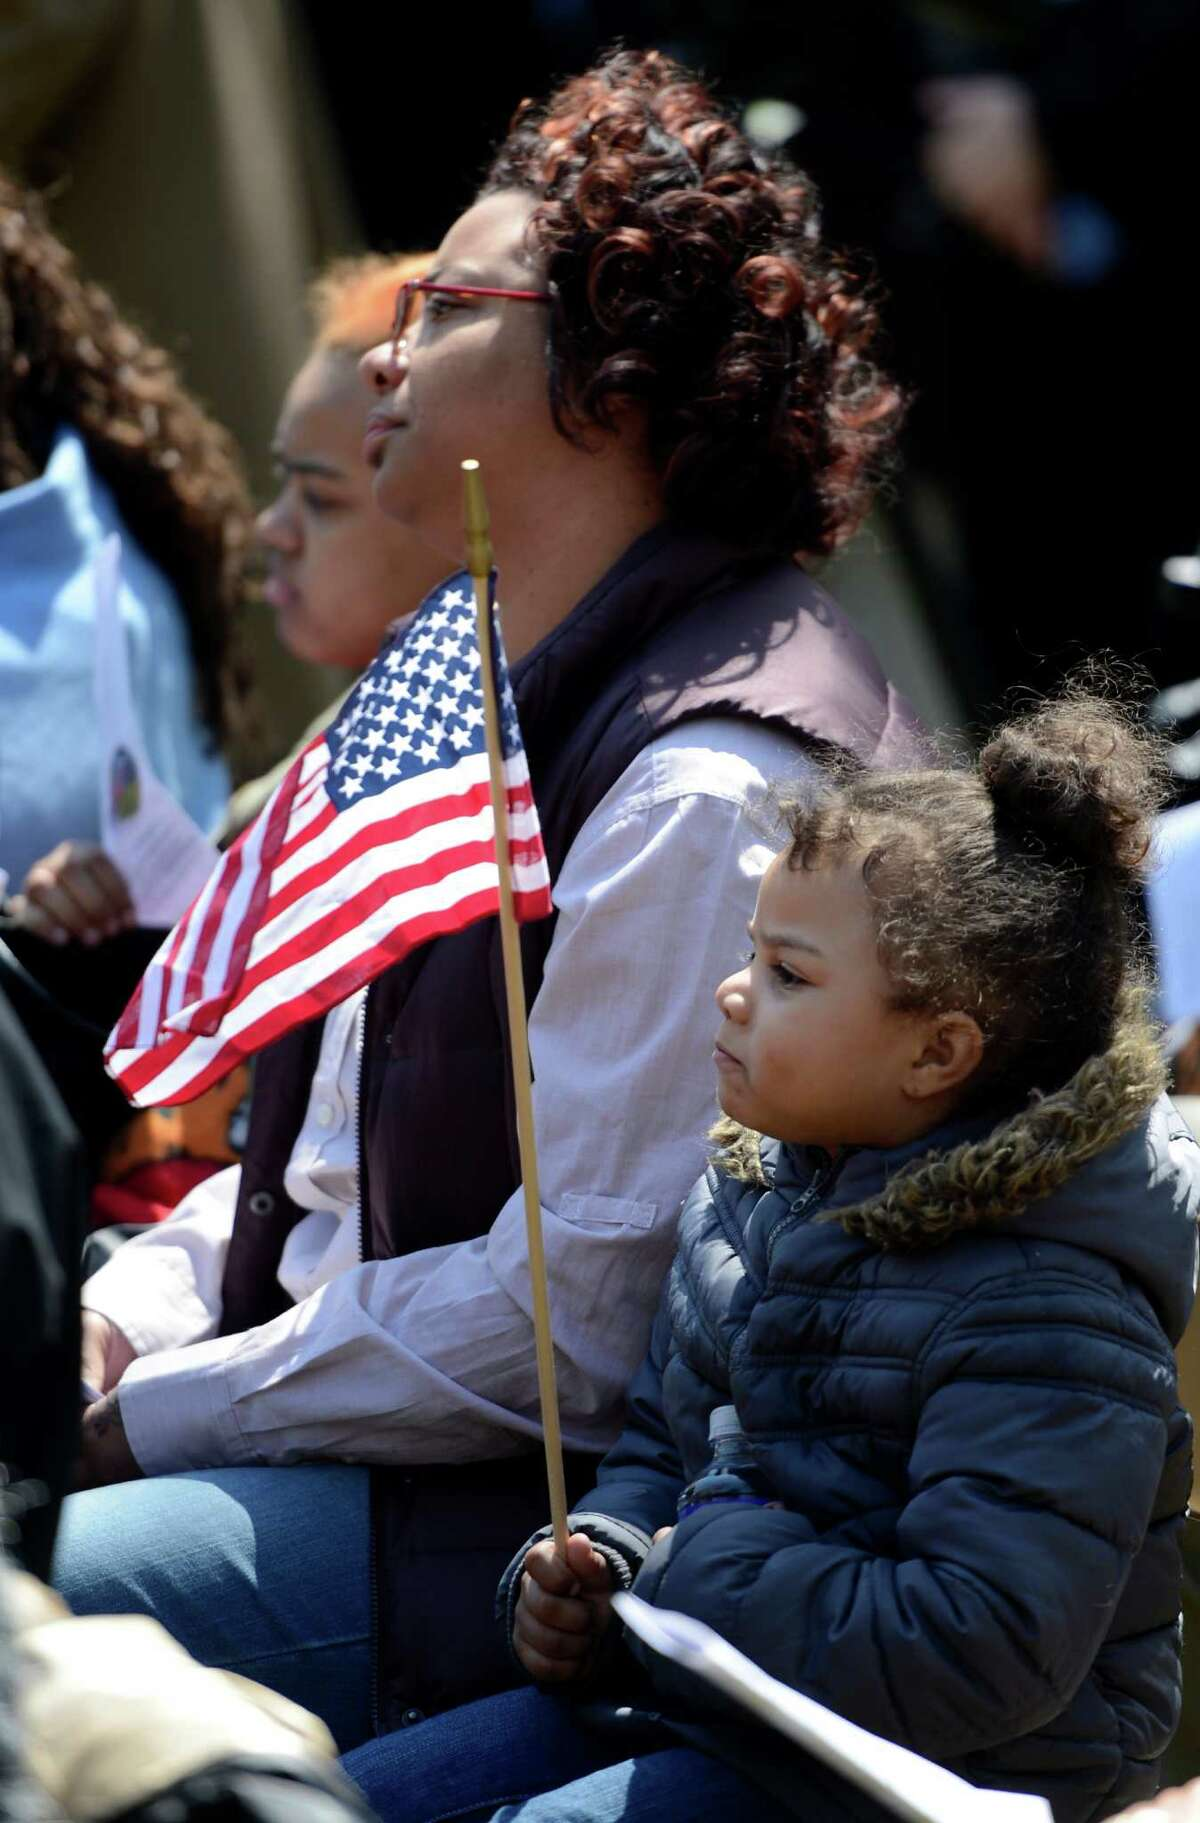 Young Jayla Stalworth, foreground, holds an American flag which will be used to remember a crime victim at the Ceremony of Remembrance held at the Crime Victims Memorial April 25, 2013 in Academy Park in Albany, N.Y. (Skip Dickstein/Times Union)